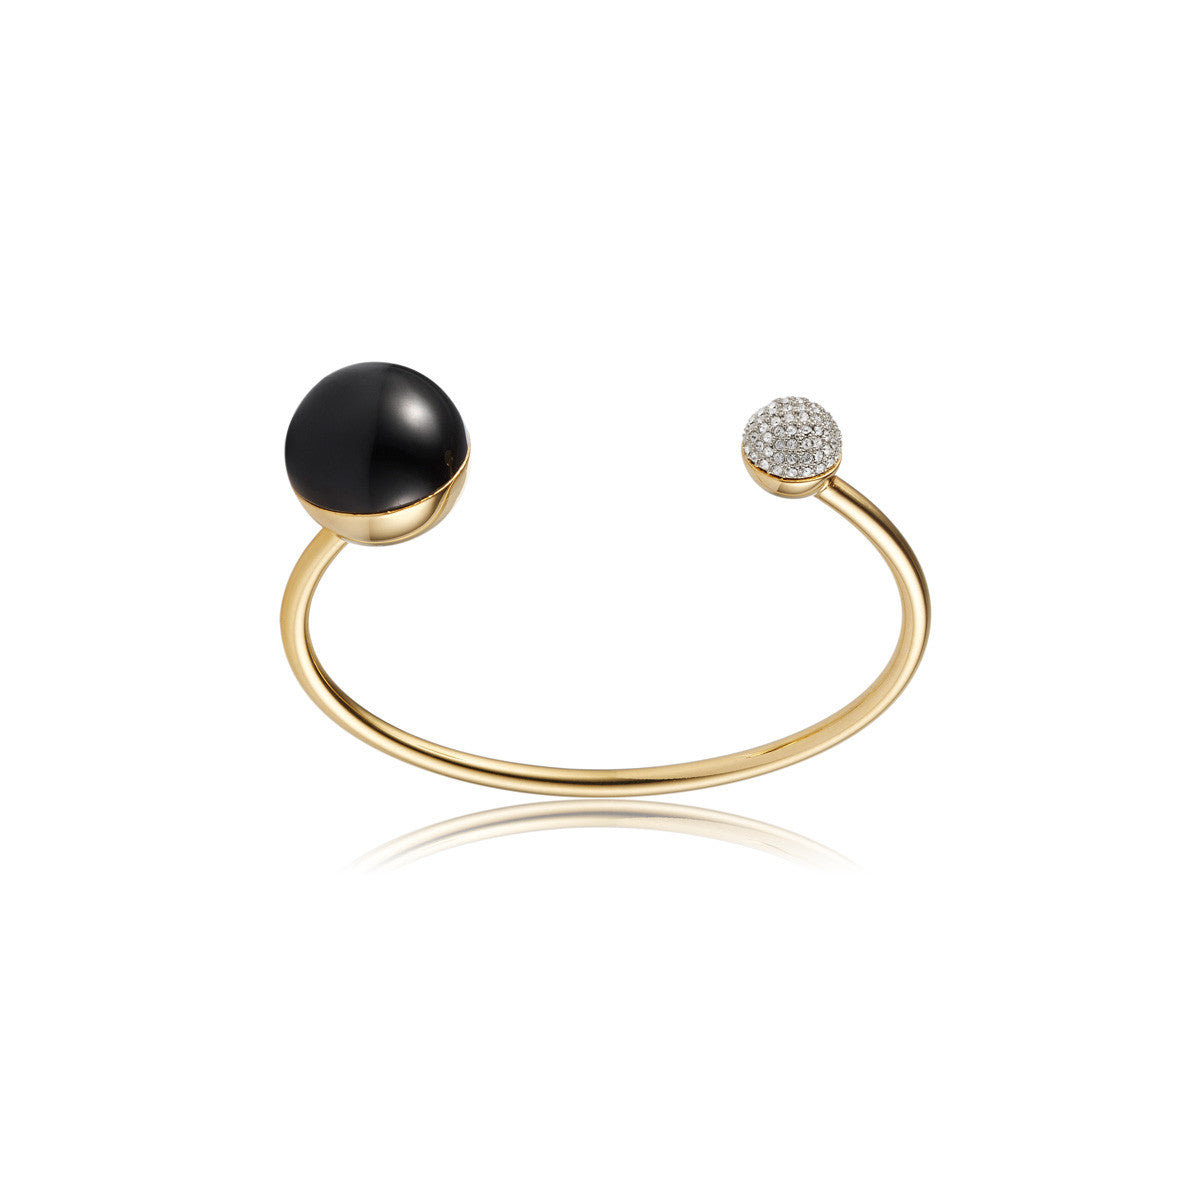 Solid brass, 18K gold plated Crystal Orbis bangle topped with black onyx and Swarovski® crystal pavè detailing - front